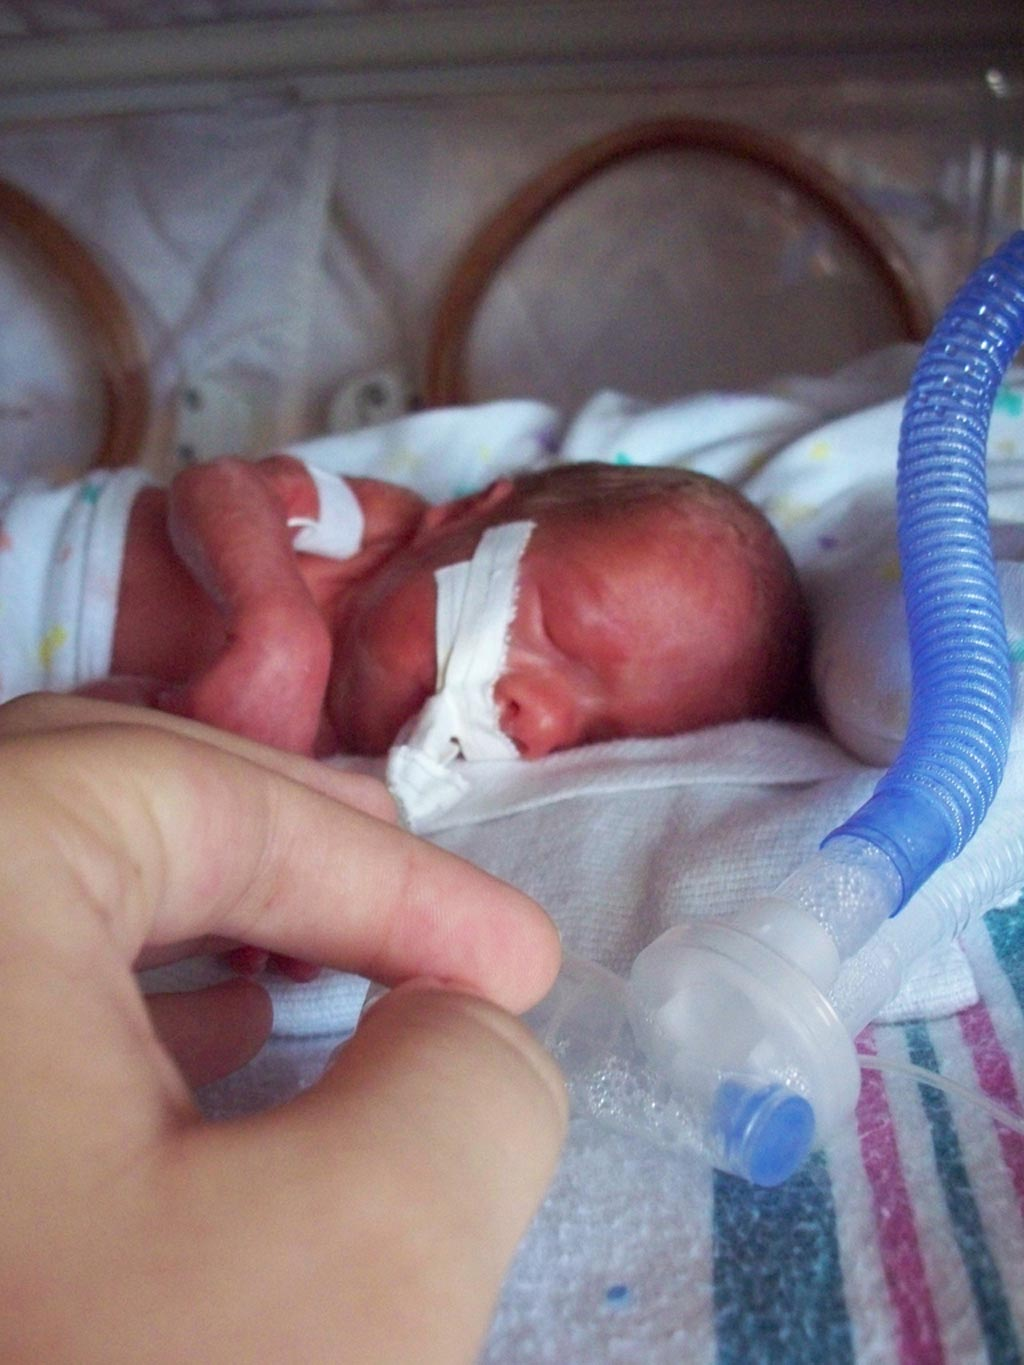 Image: An intubated baby that was born prematurely 26 weeks, six days gestation, weighing 990 grams. Photograph was taken approximately 24 hours after birth (Photo courtesy of Wikimedia Commons).